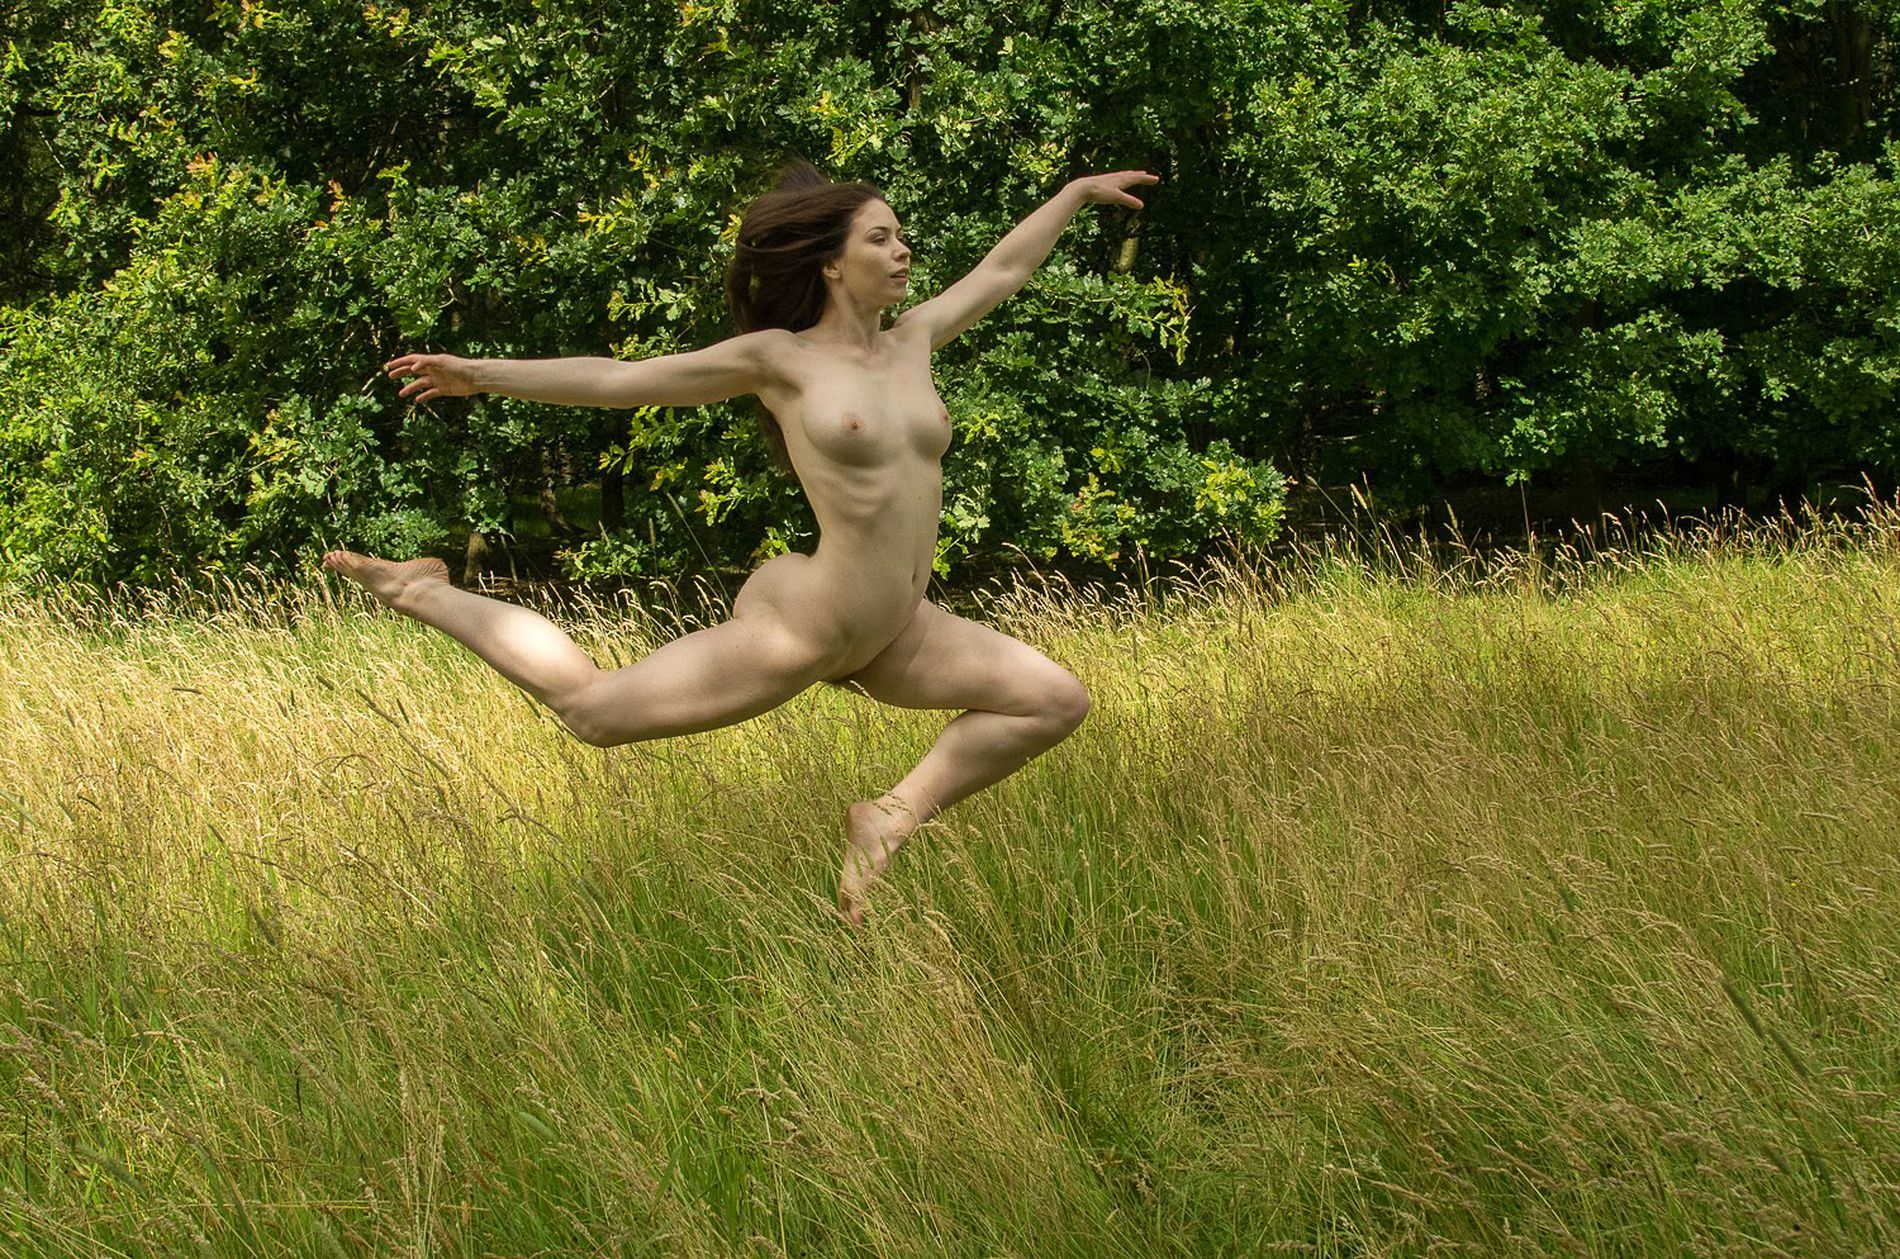 So catching nude jumps, so light fitness debutante